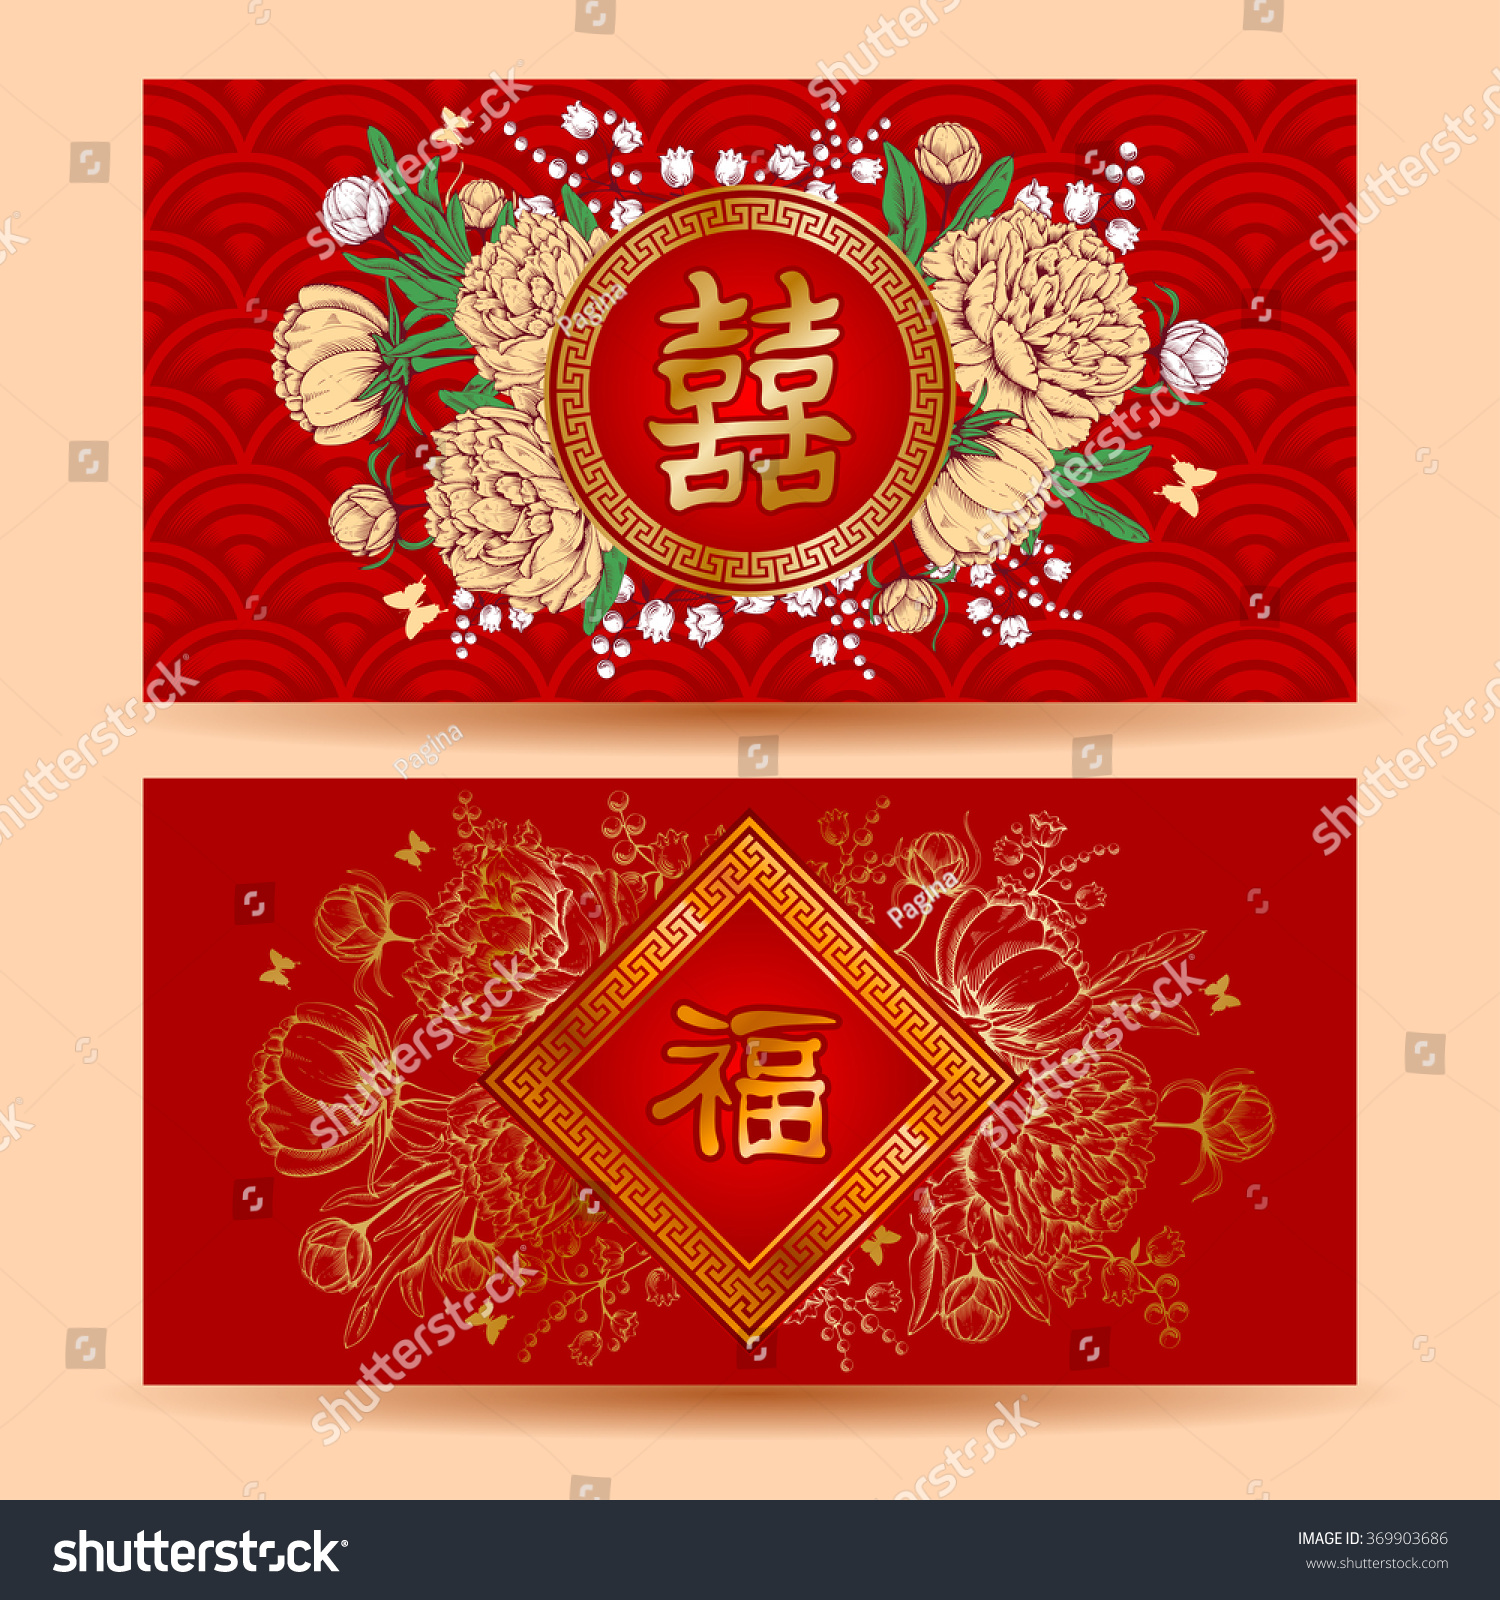 chinese new year red envelopes for money ang pau design flowers luxury